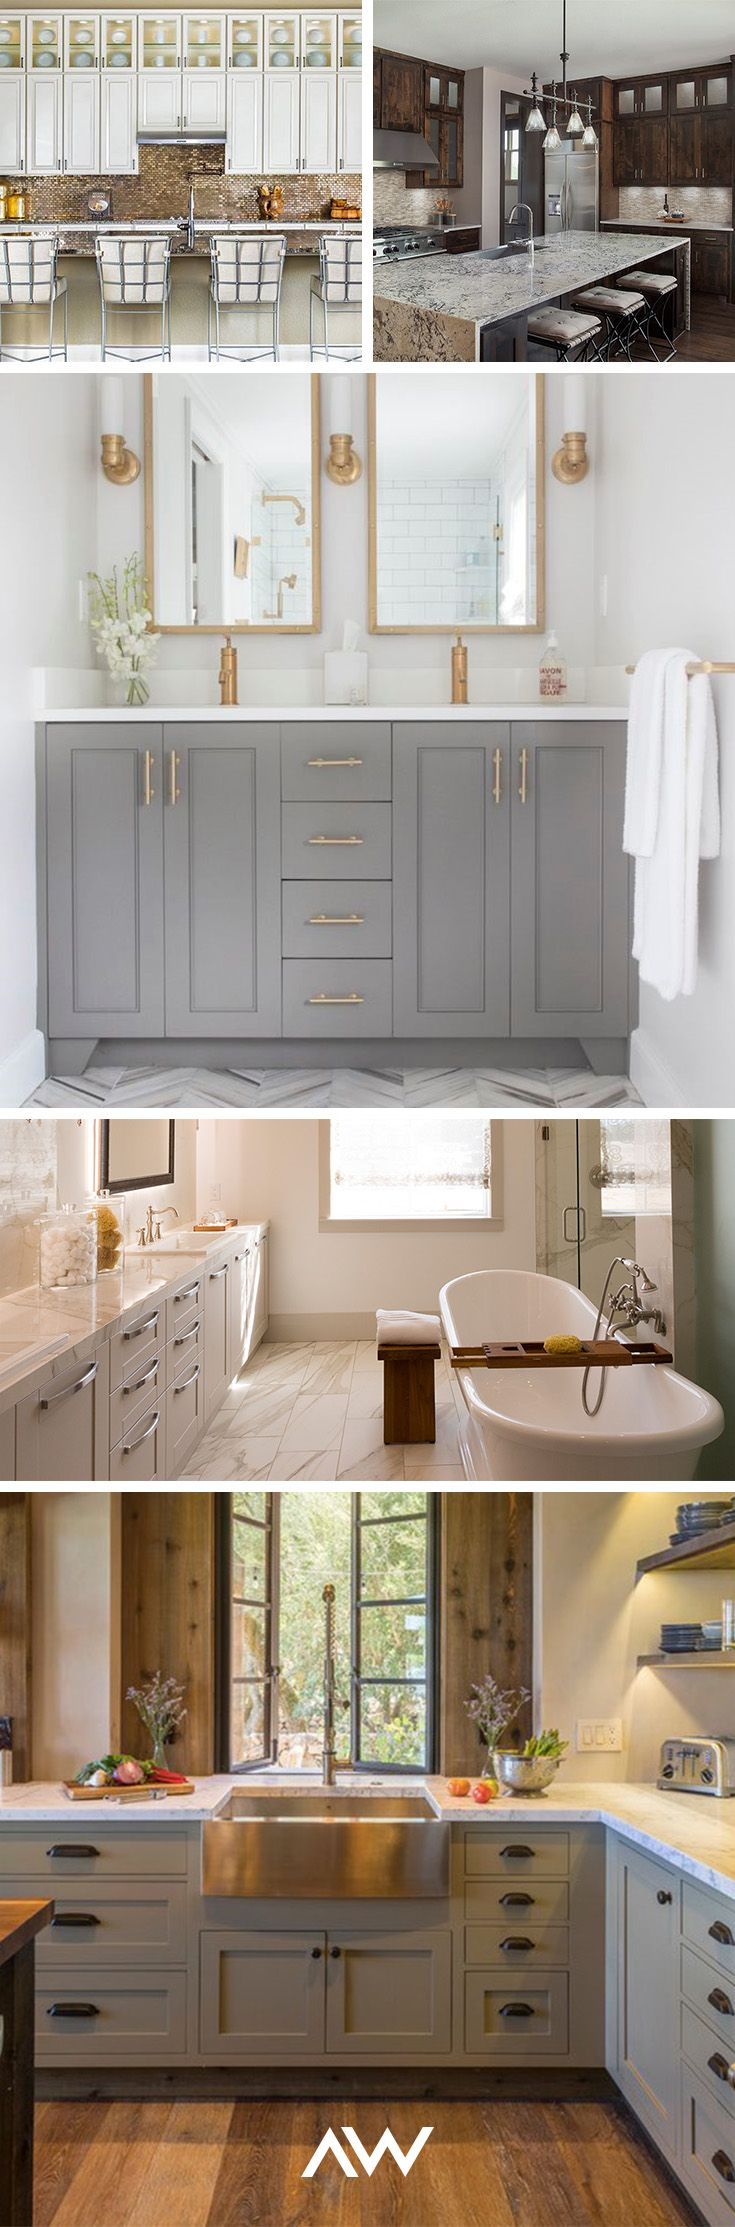 100 best cabinet inspiration ashton woods images on pinterest whether you re building a new home or renovating your current one cabinets are an important part of interior design